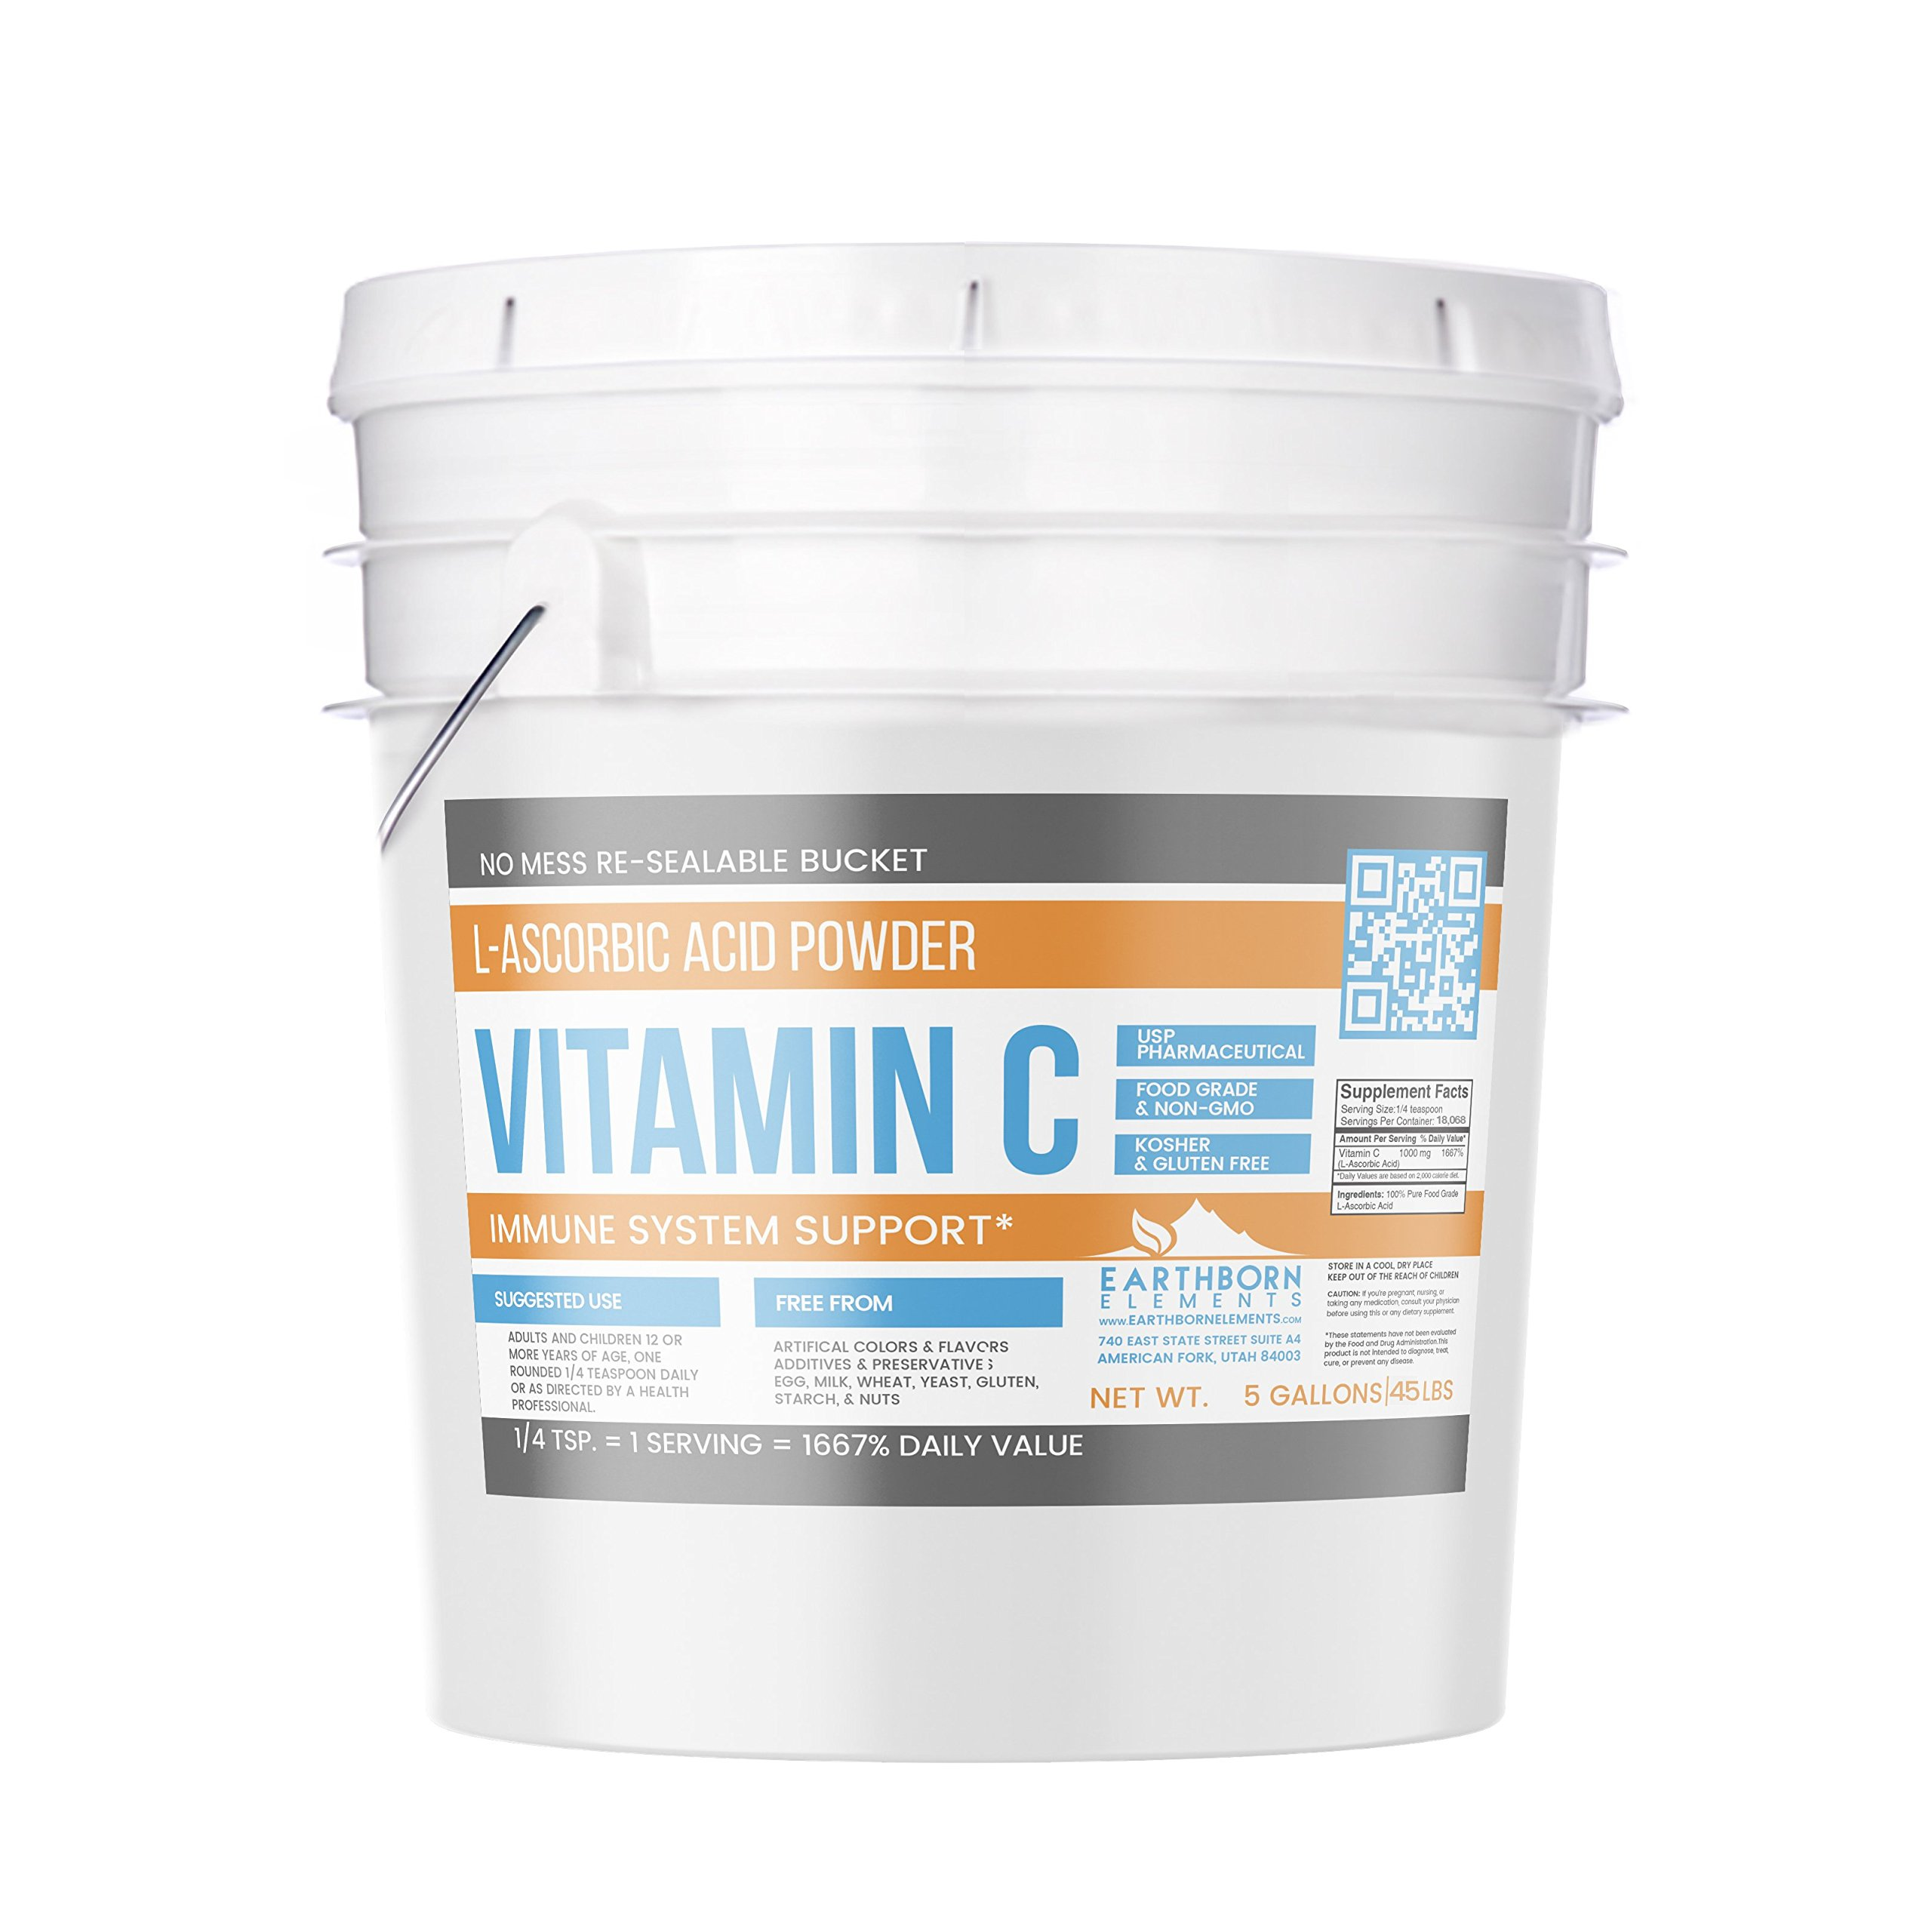 Vitamin C Powder (L-Ascorbic Acid) (5 Gallon (45 lb.)) by Earthborn Elements, Resealable Bucket, Antioxidant, Boost Immune System, DIY Skin Care, Satisfaction Guaranteed